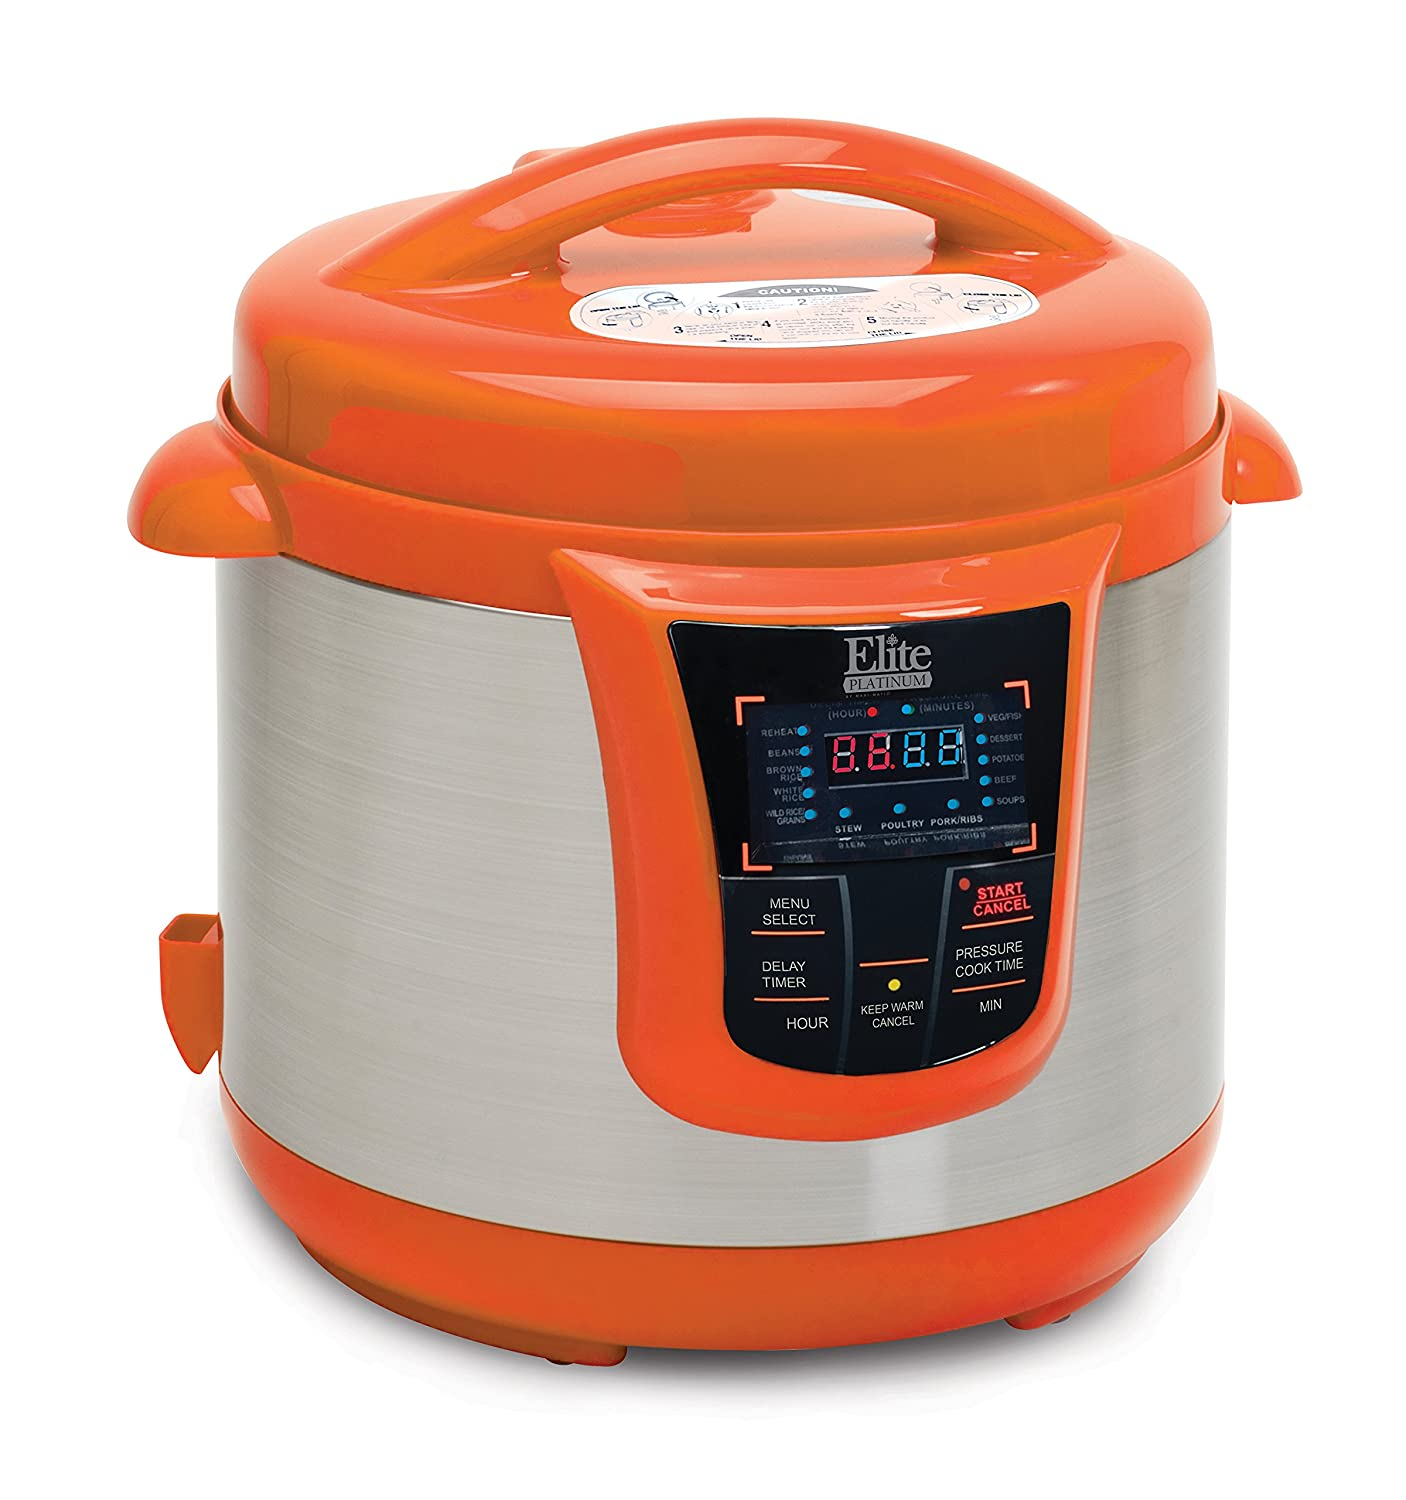 Fagor duo 8 quart pressure cooker - Amazon Com Elite Platinum Epc 808or Maxi Matic 8 Quart Electric Pressure Cooker Orange Stainless Steel Kitchen Dining